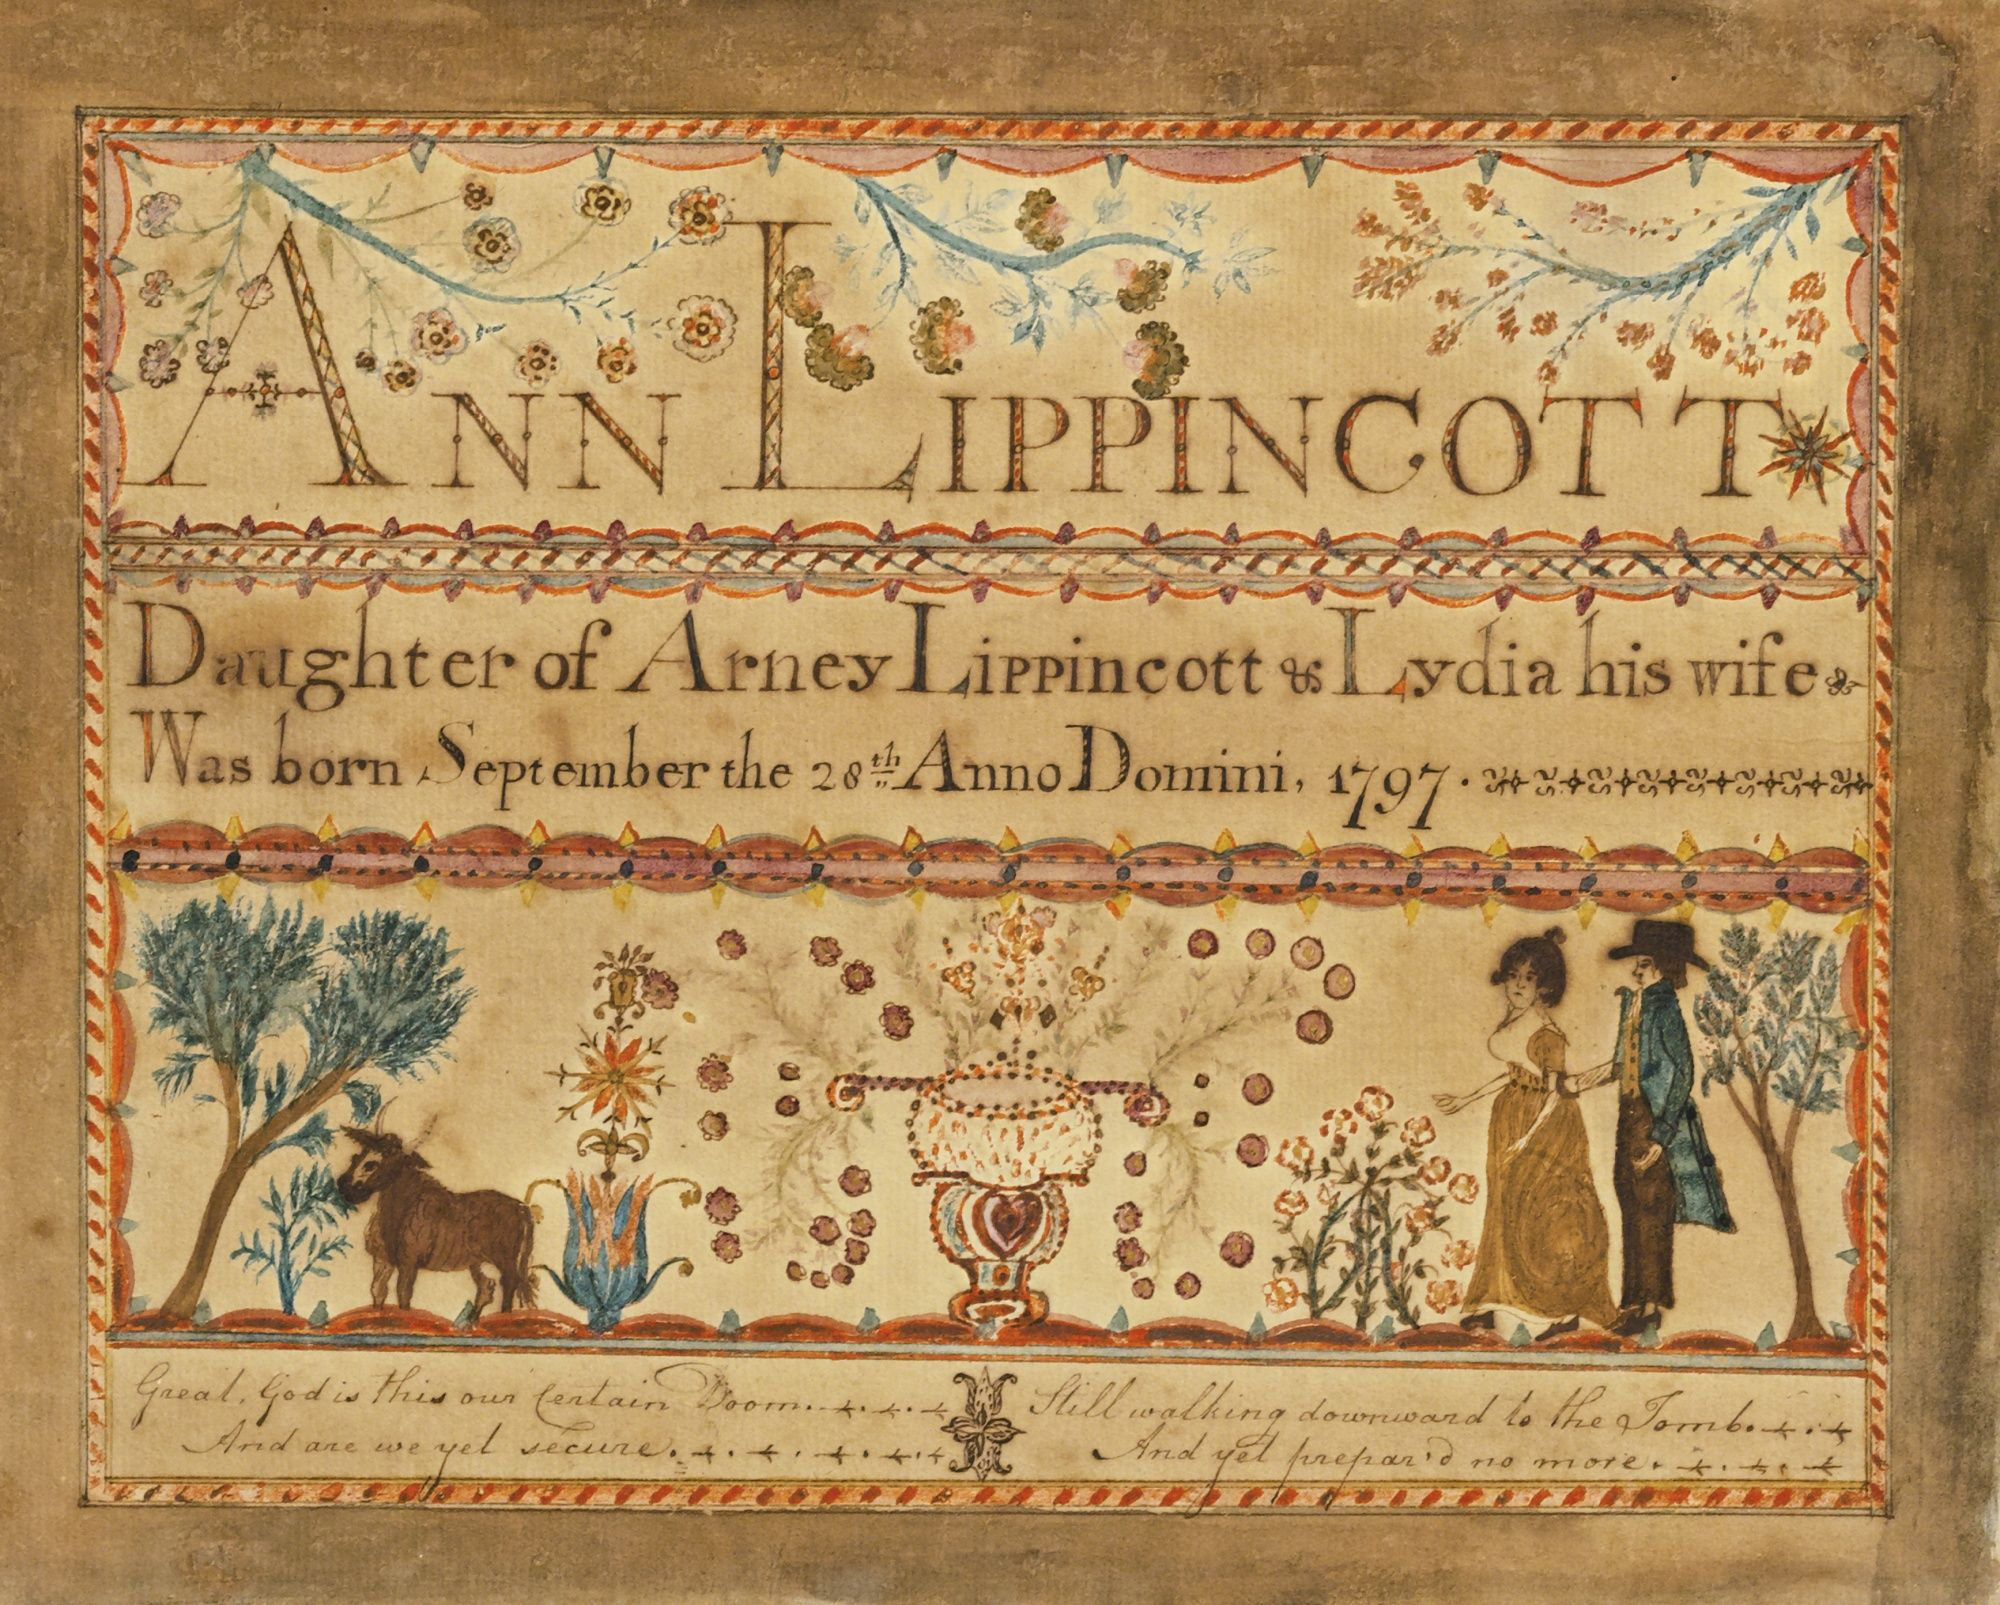 620 Watercolor Birth Certificate For Ann Lippincott The New Jersey